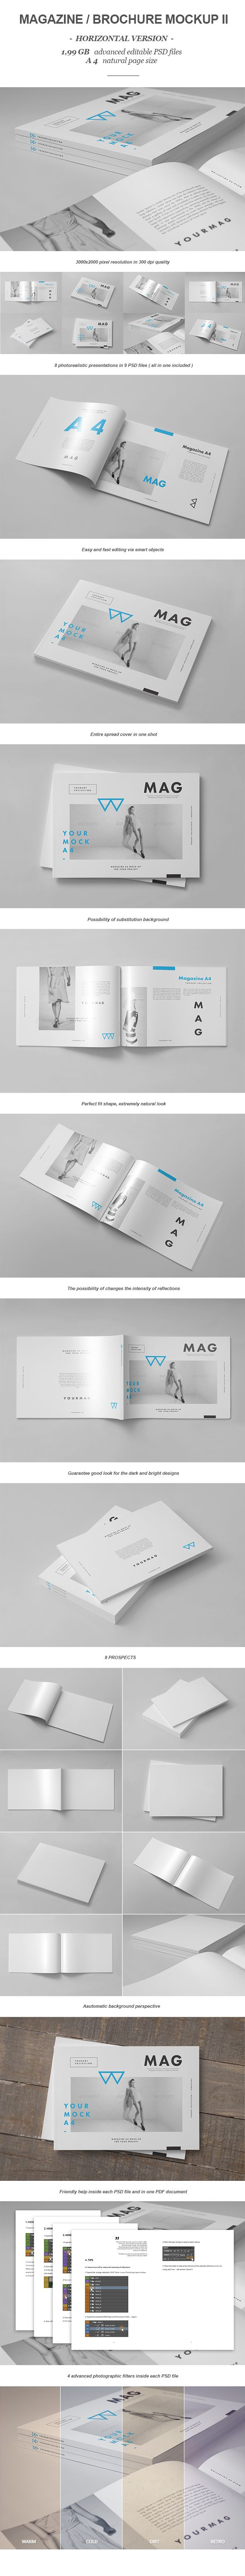 Horizontal Magazine Brochure Mock-up II by yogurt86 Design Studio, via Behance